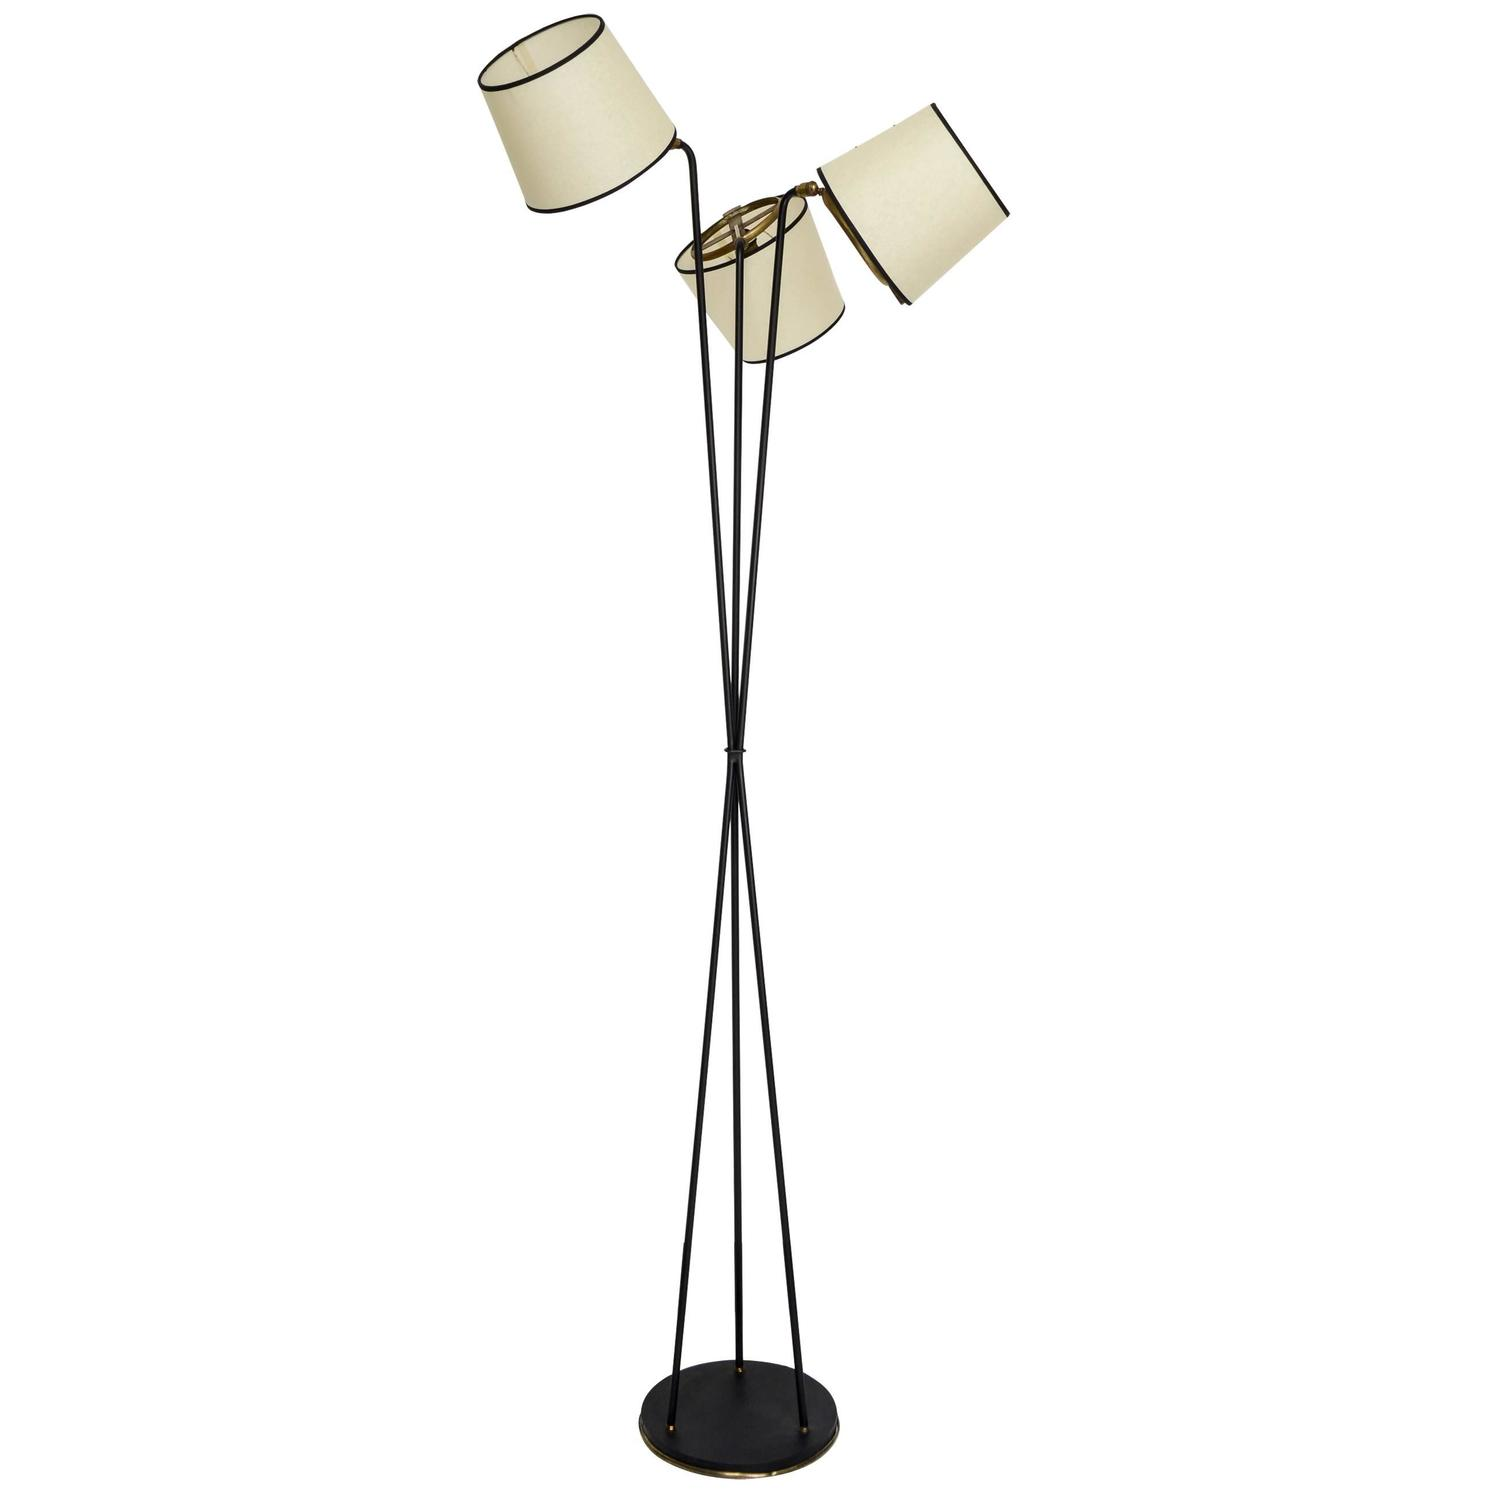 floor lamp by lunel circa 1950 for sale at 1stdibs. Black Bedroom Furniture Sets. Home Design Ideas